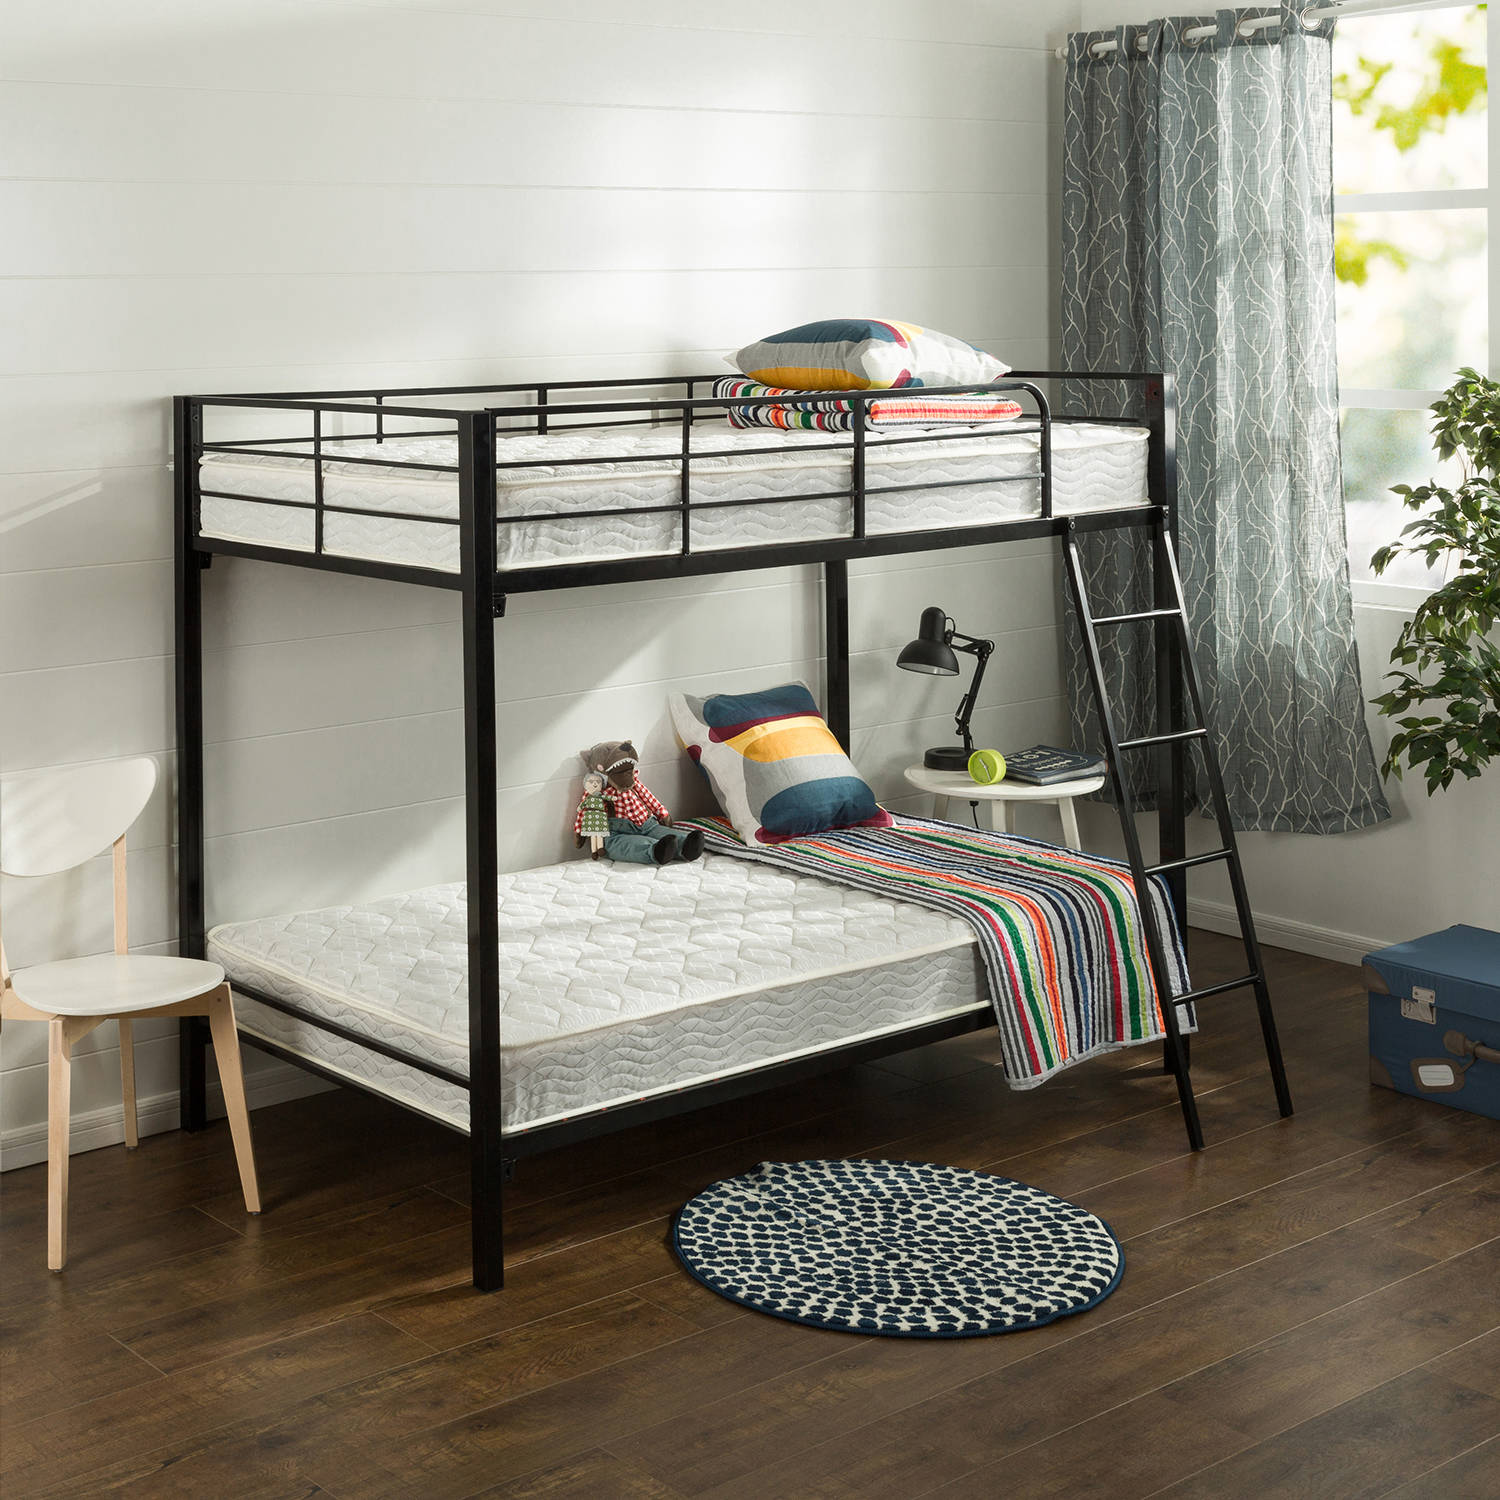 "Slumber 1 Comfort 6"" Twin Pack Bunk Bed Spring Mattress"